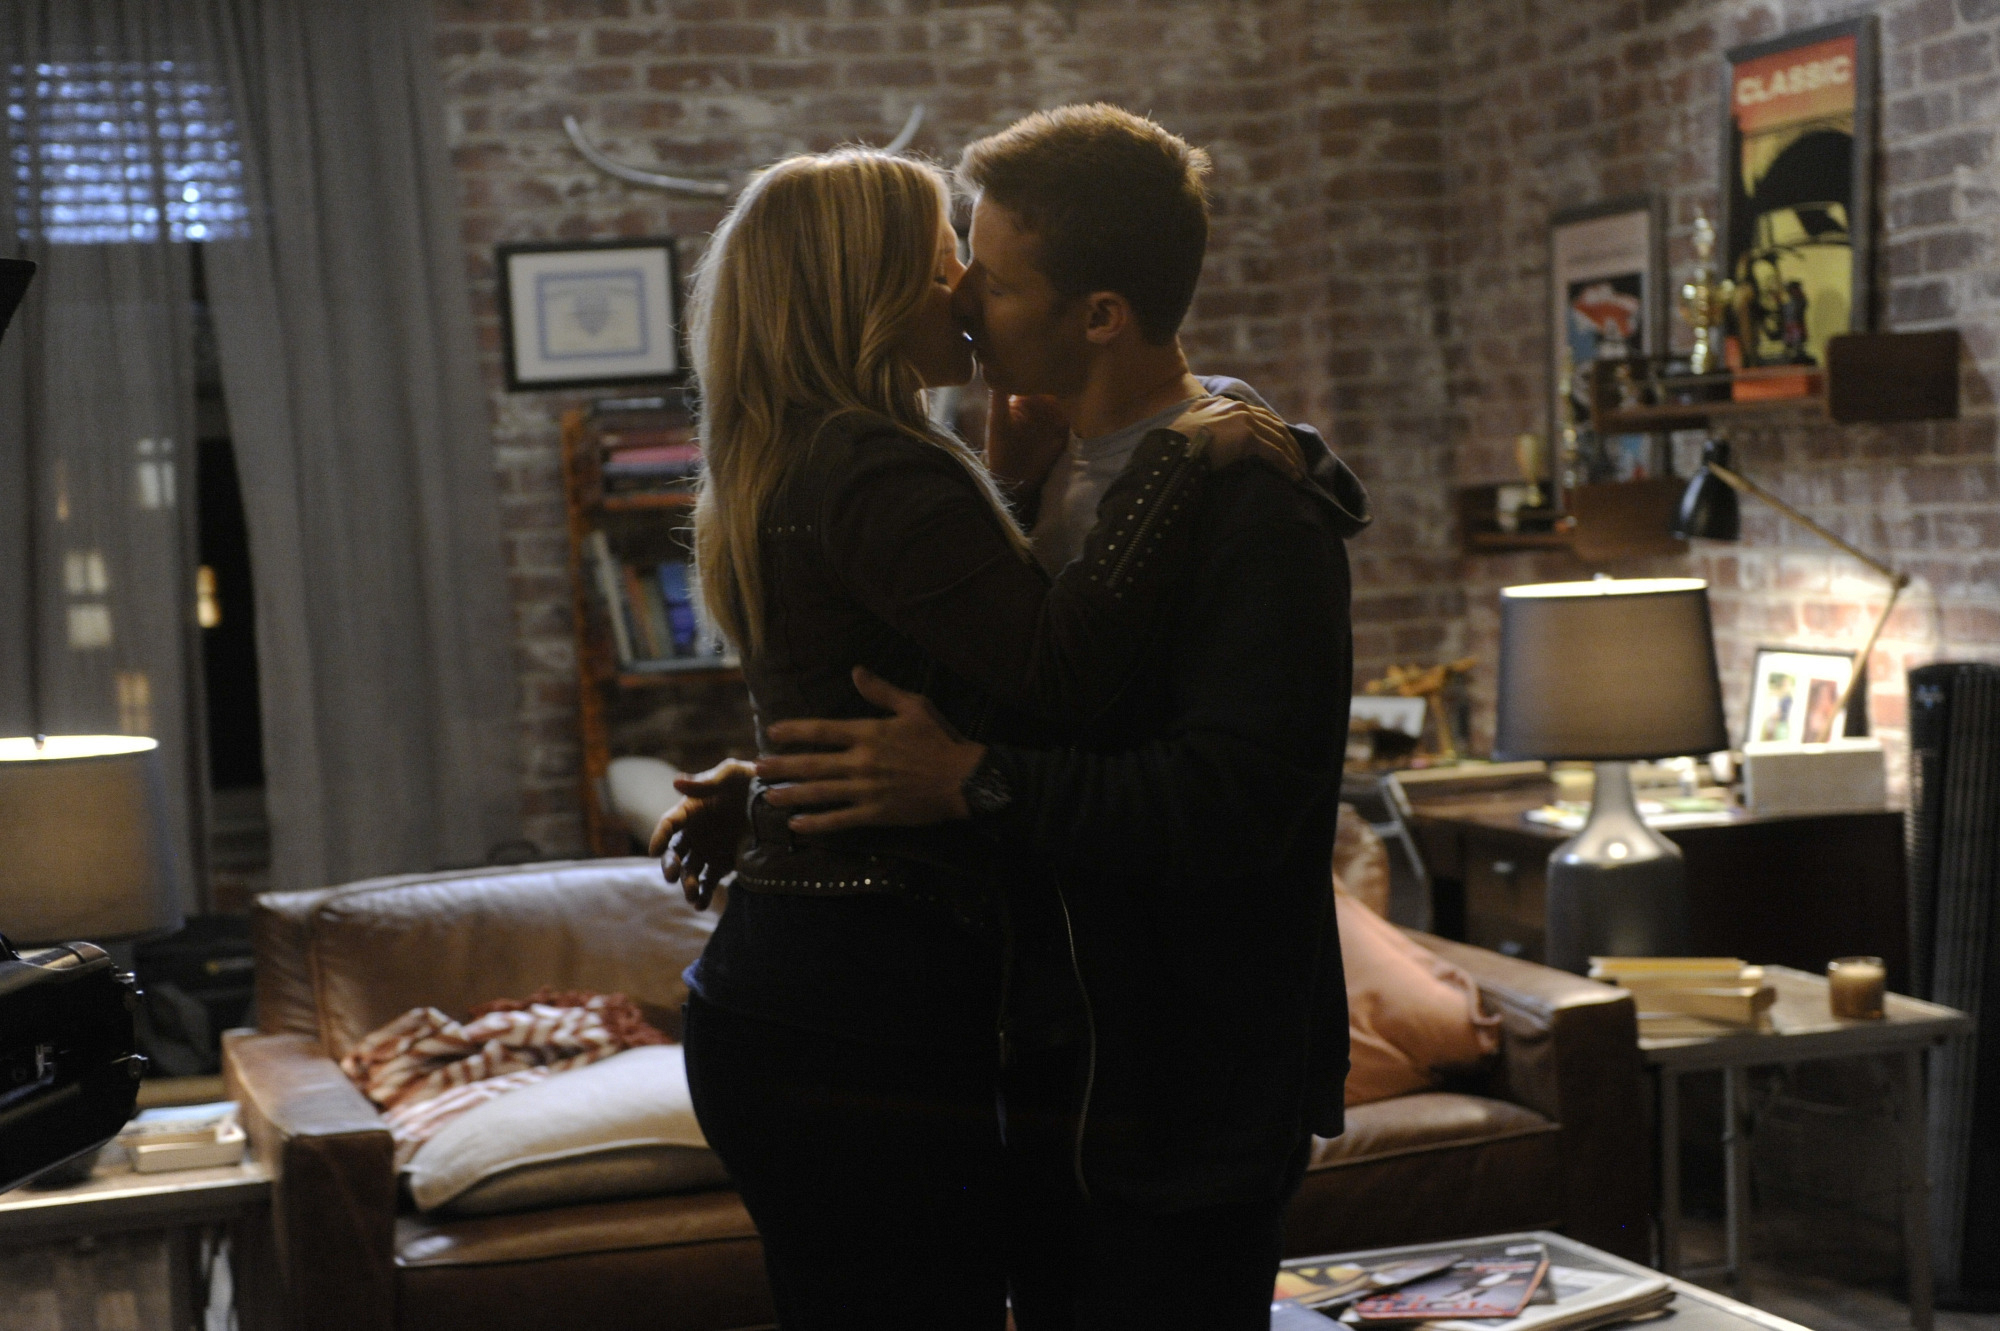 12. They finally admitted their feelings for each other—and kissed again!